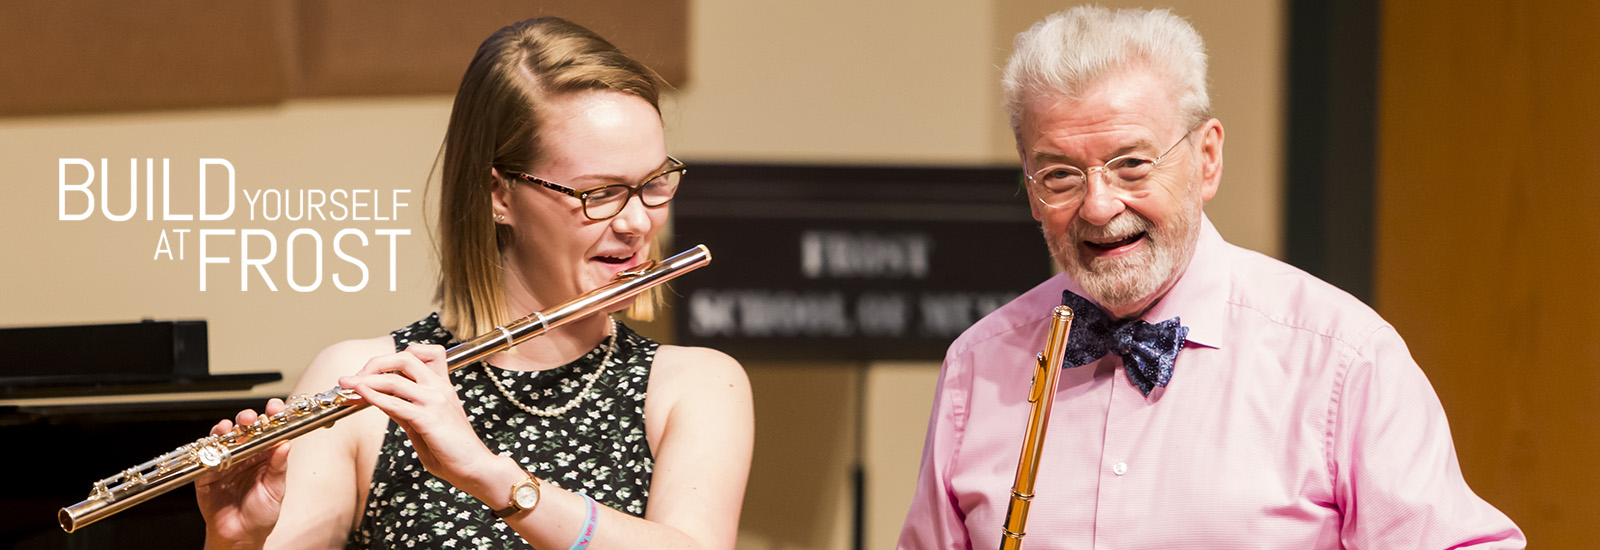 A blonde woman with glasses is smiling as she plays the flute while an older man with glasses holding a flute smiles at the camera.